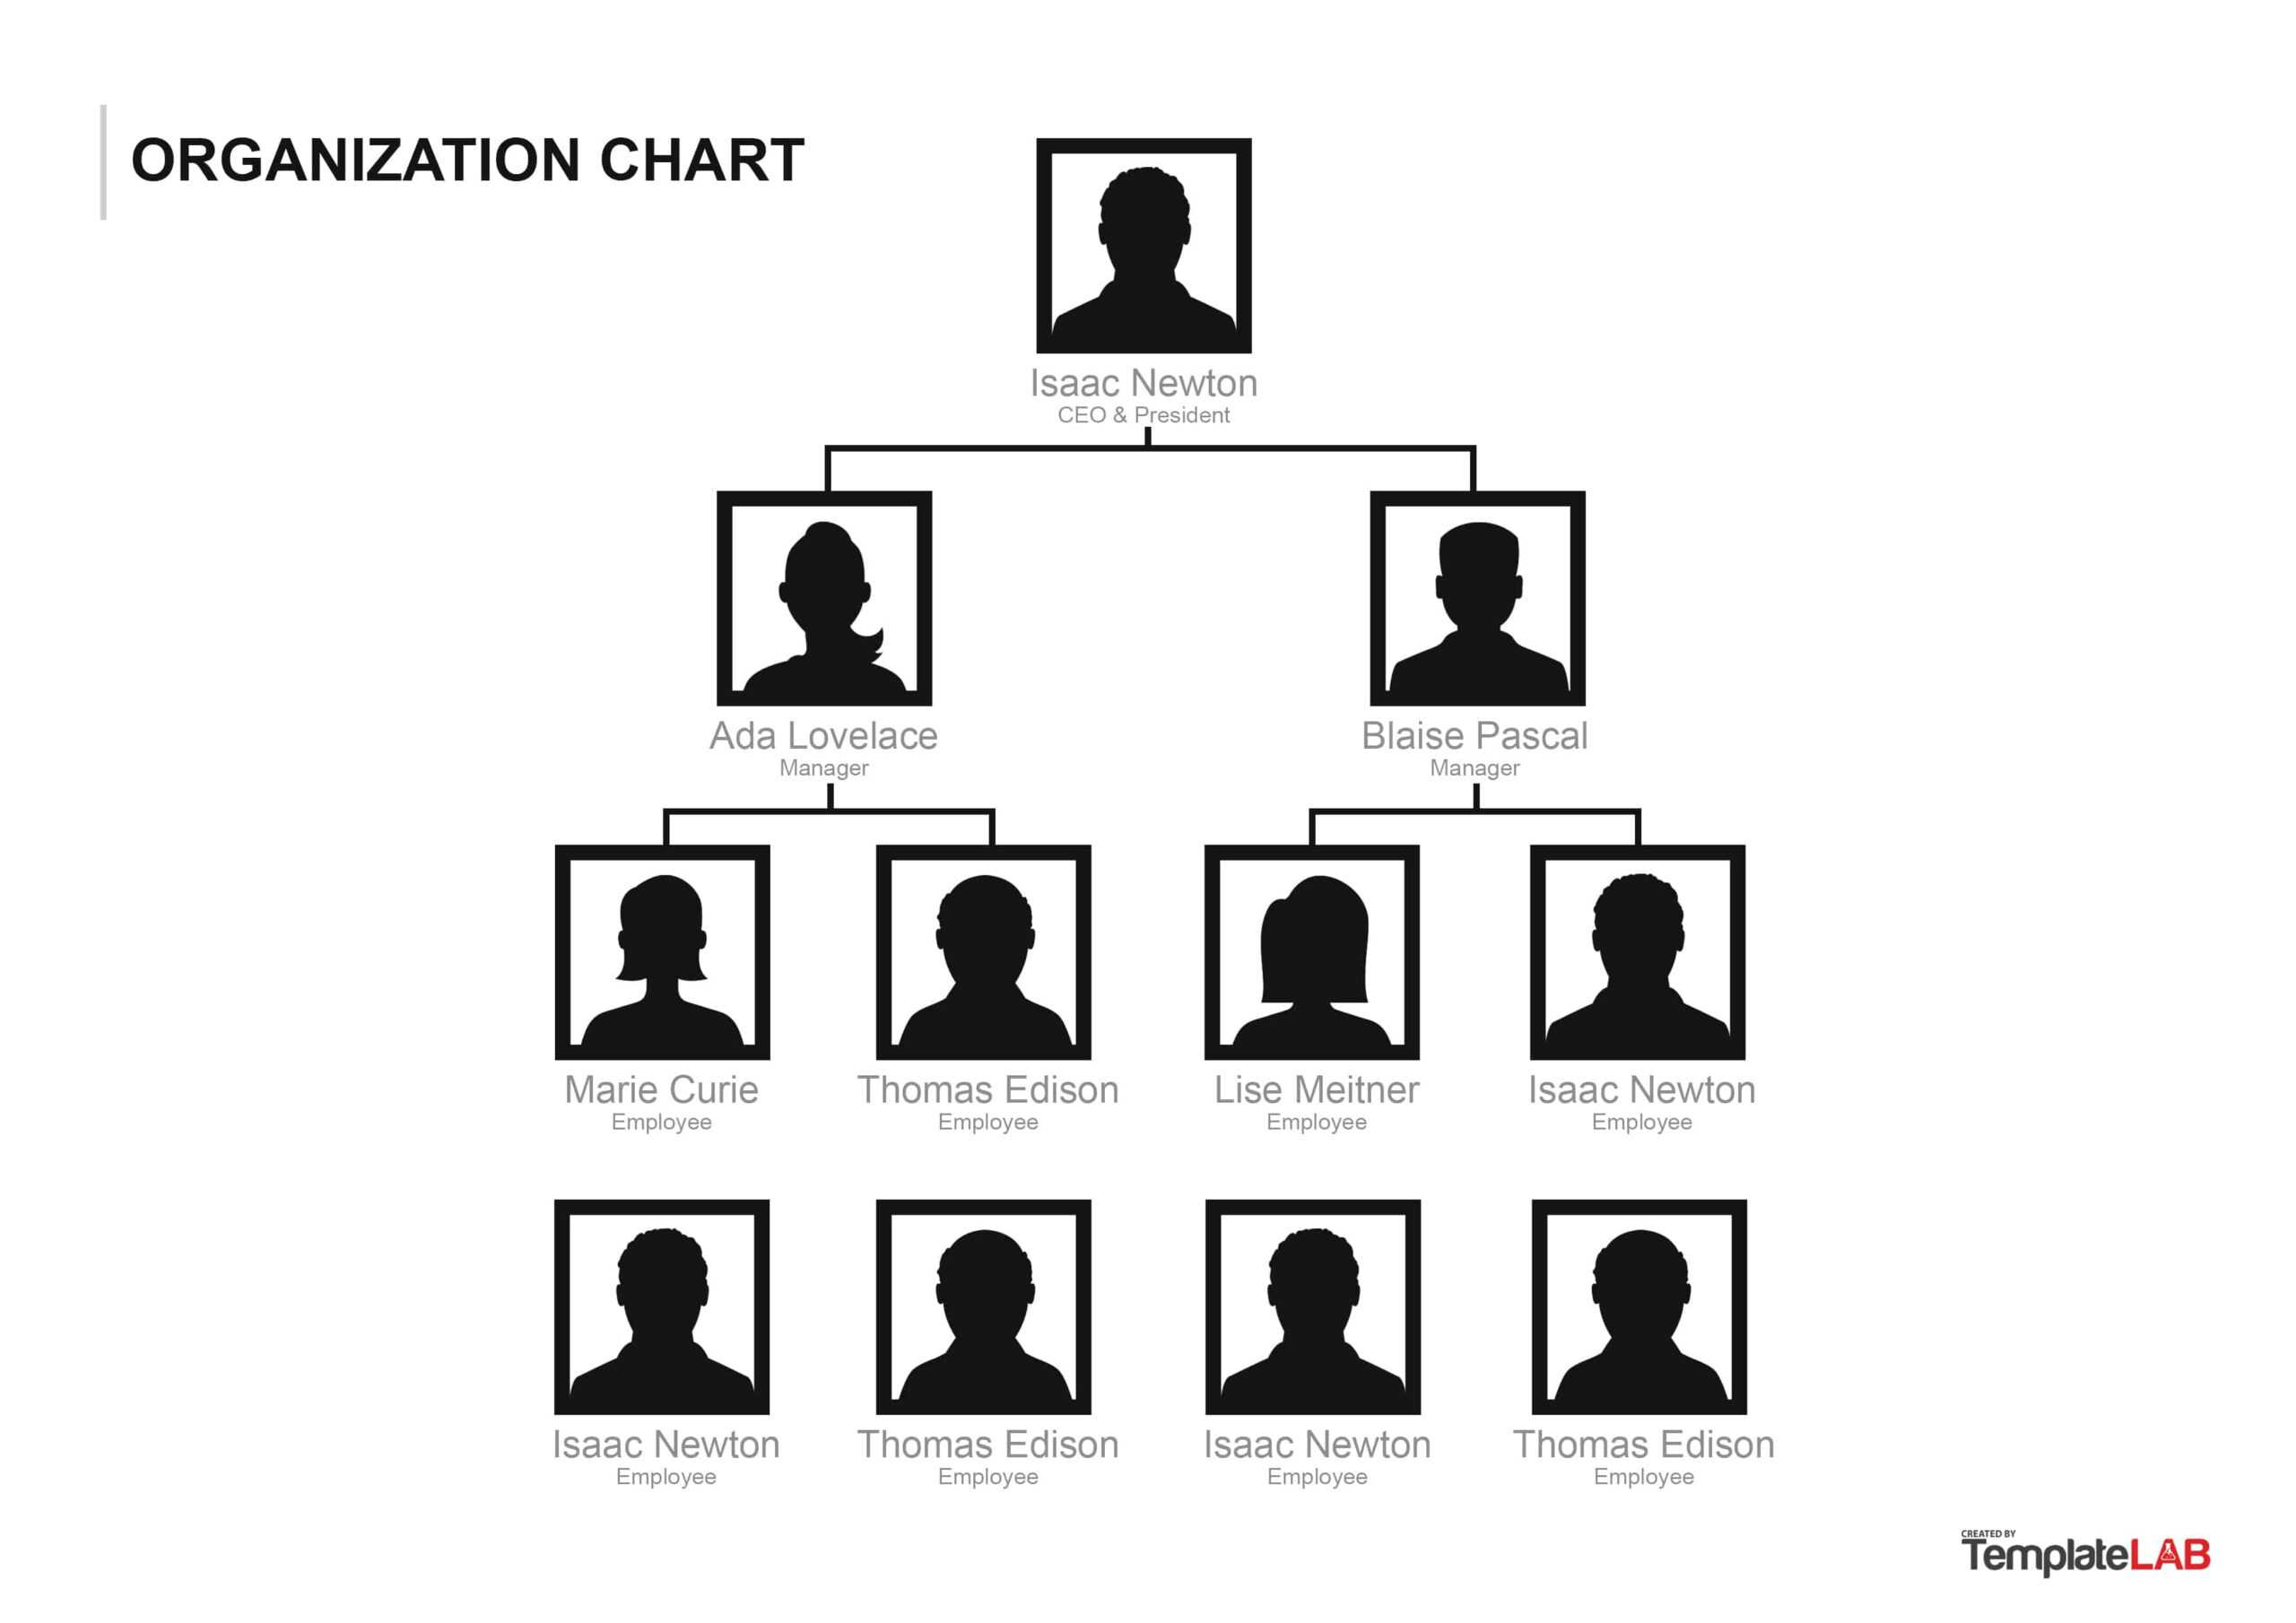 40 Organizational Chart Templates (Word, Excel, Powerpoint) Pertaining To Organogram Template Word Free